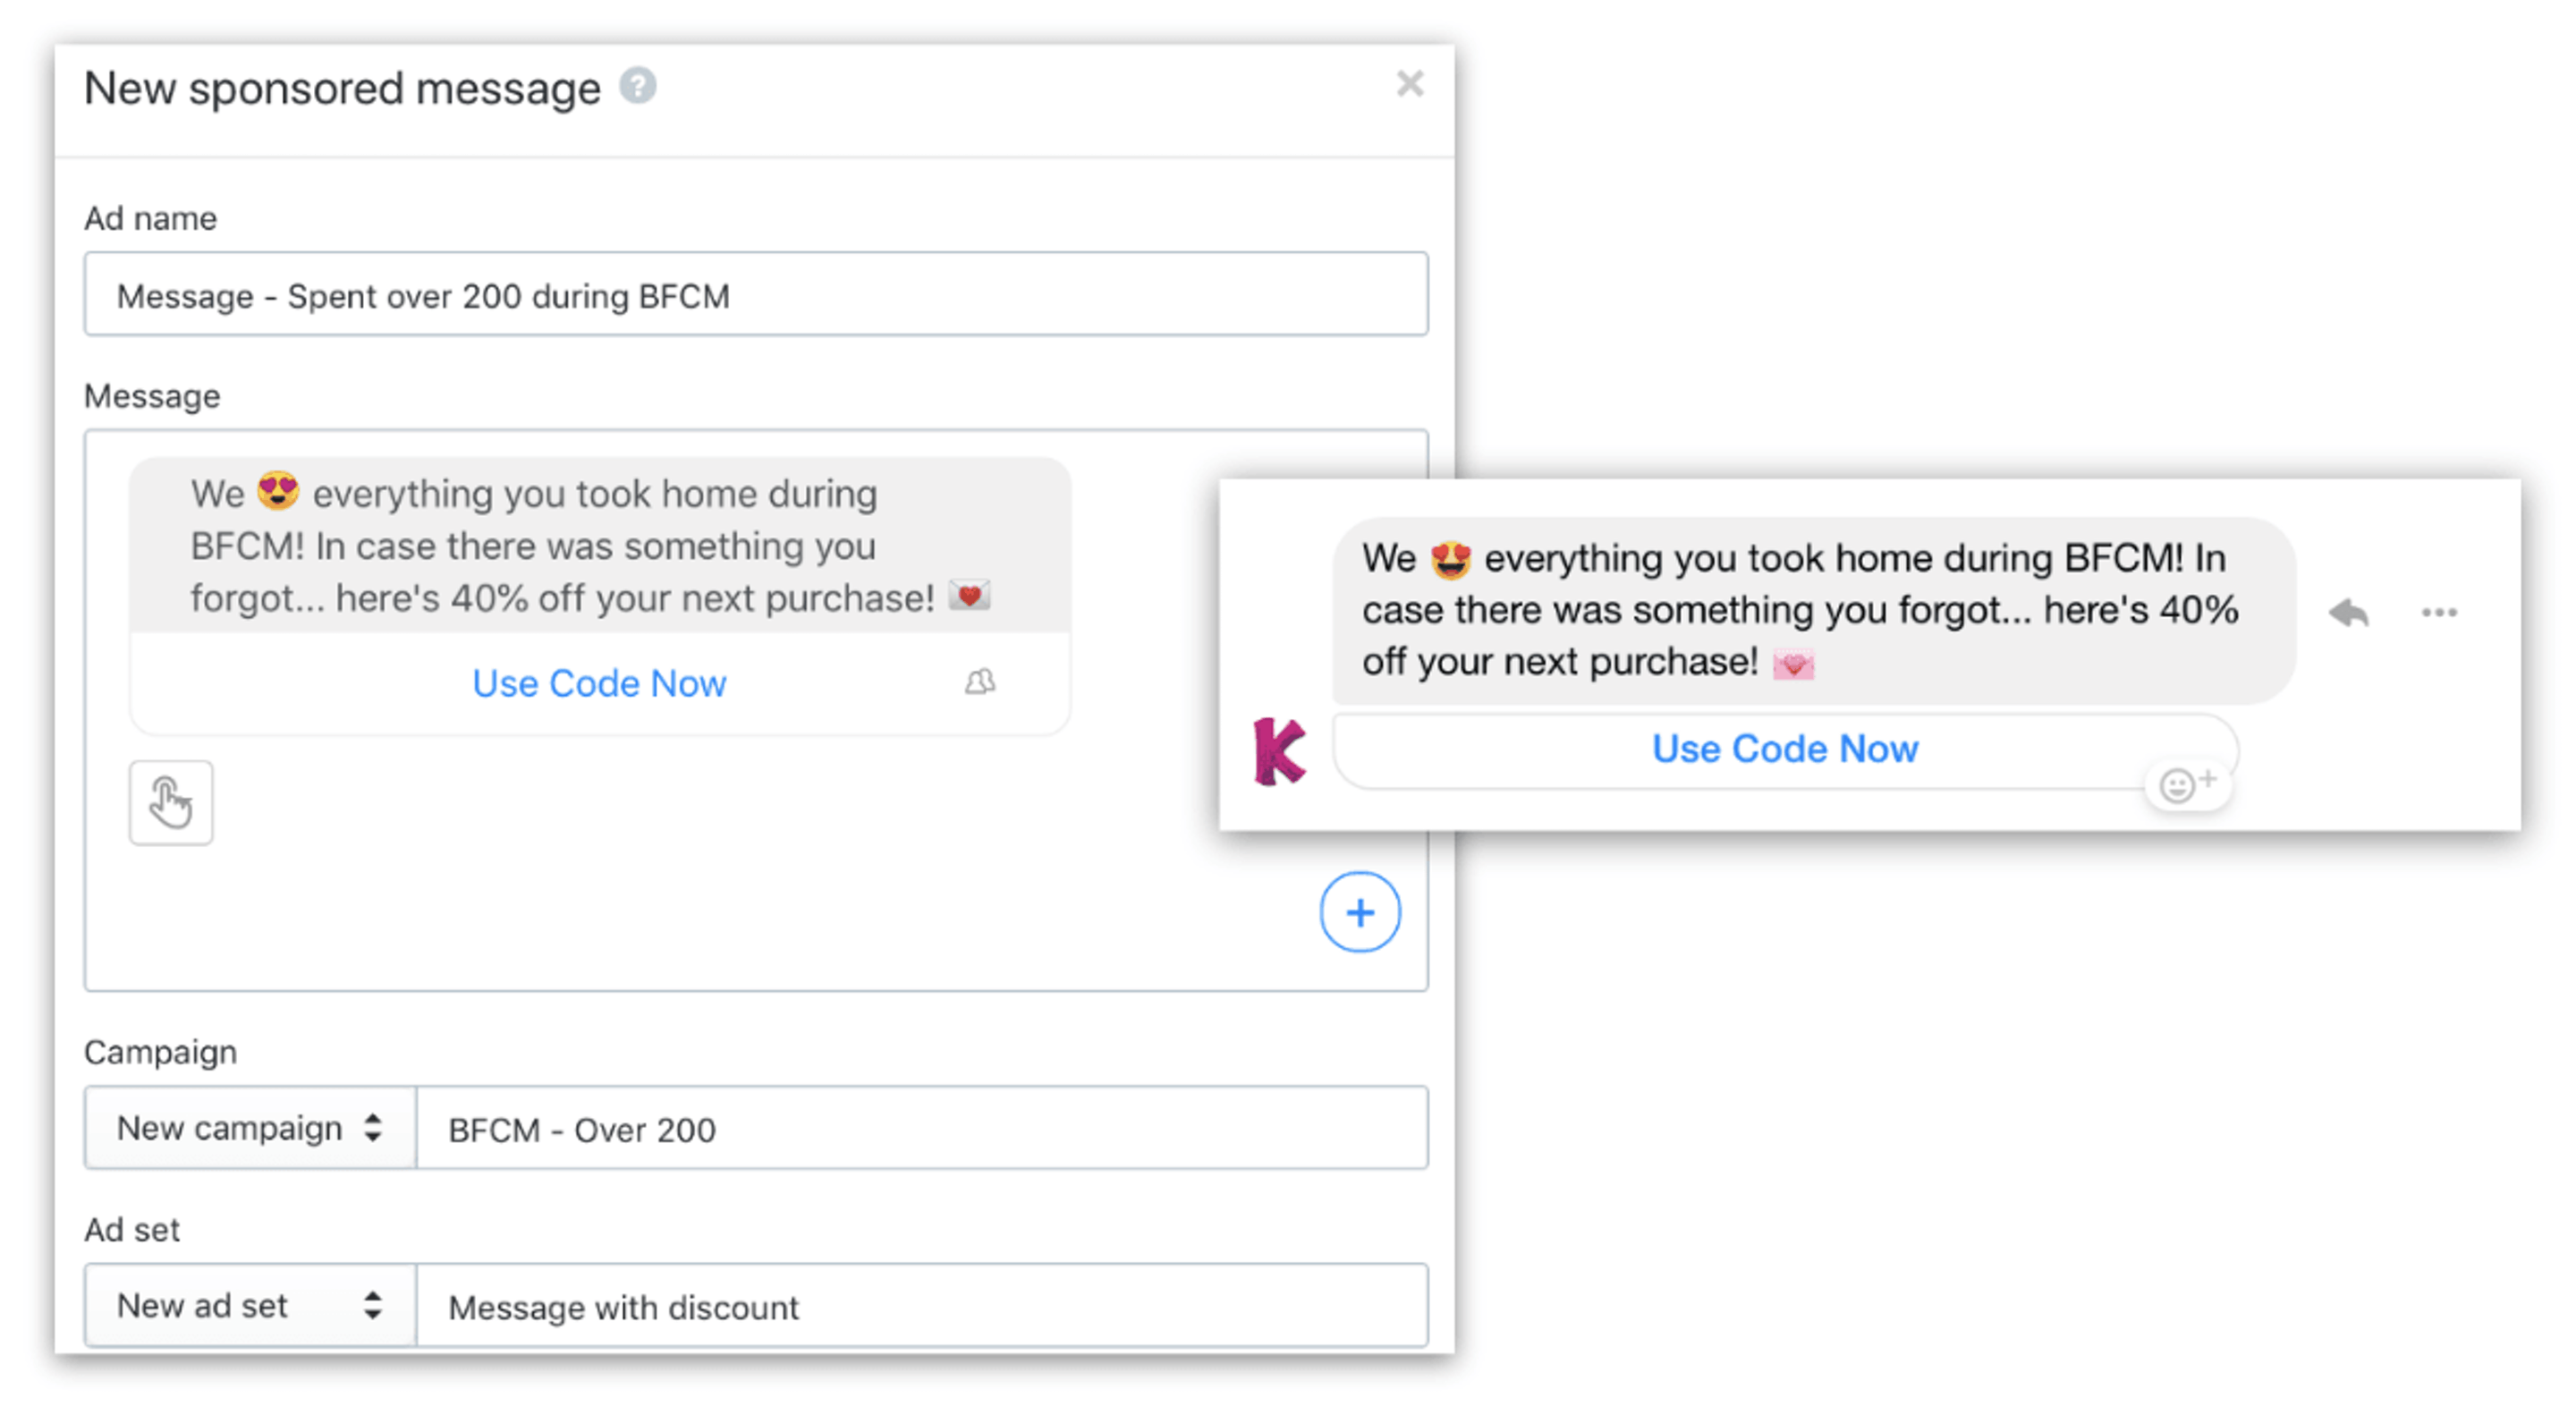 User interface for setting up a new sponsored message